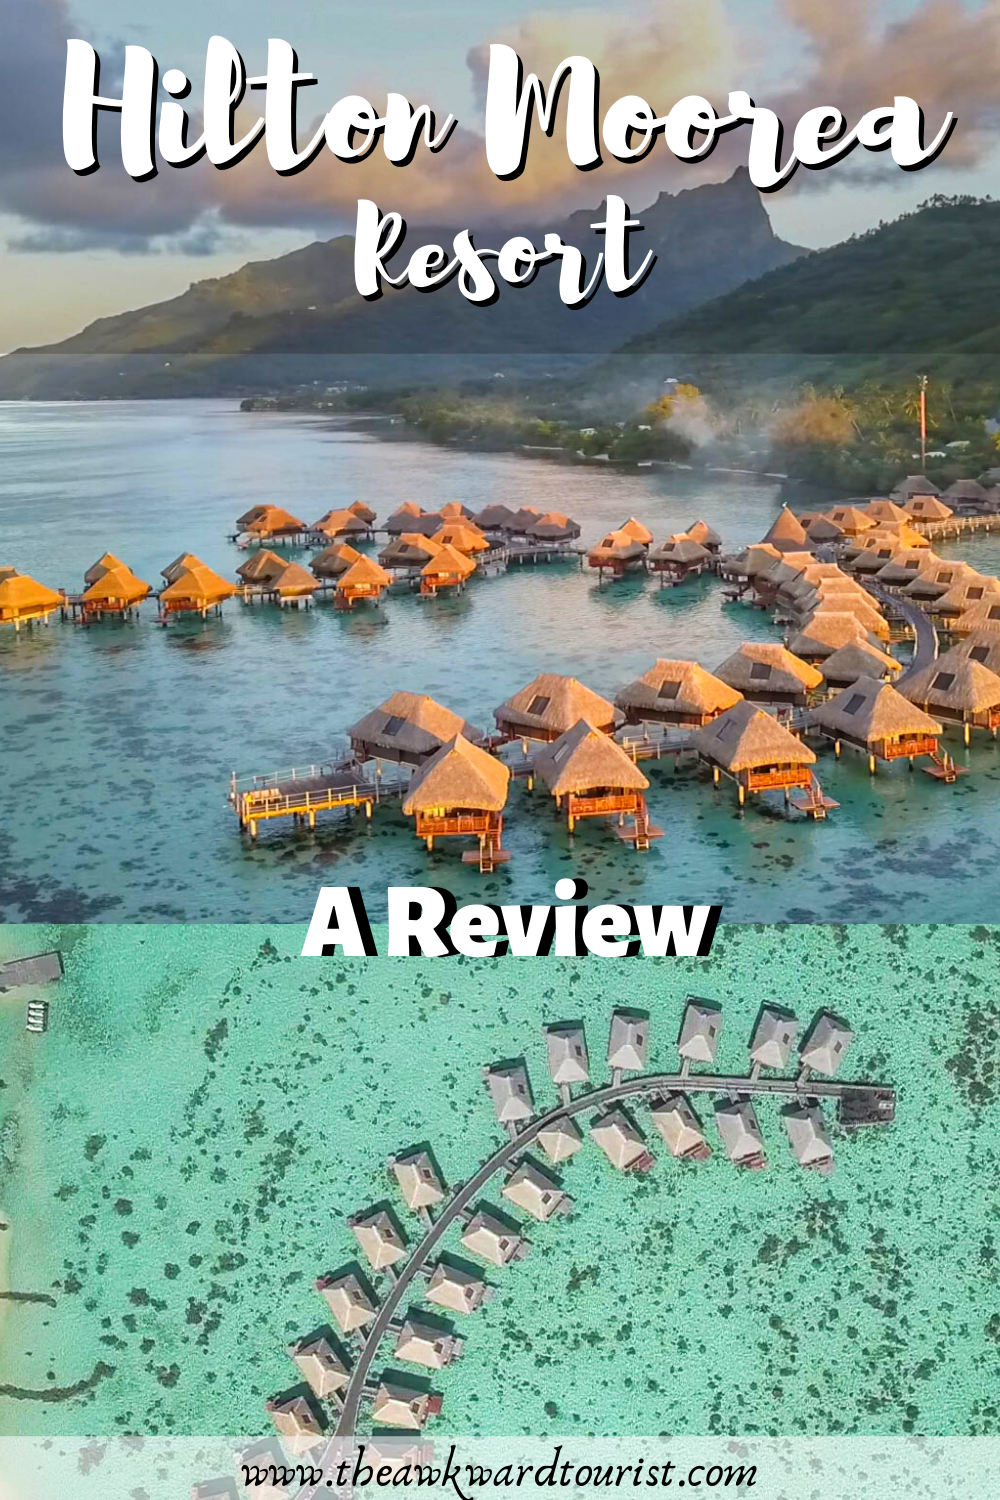 Hilton Moorea Resort and Spa A Review is part of Hilton moorea, Weekend travel destinations, International travel destinations, Tourist, Resort, Moorea - Check out an honest review of our stay at Hilton Moorea Resort & Spa in February 2020  We review facilties, food, staff, and amenities